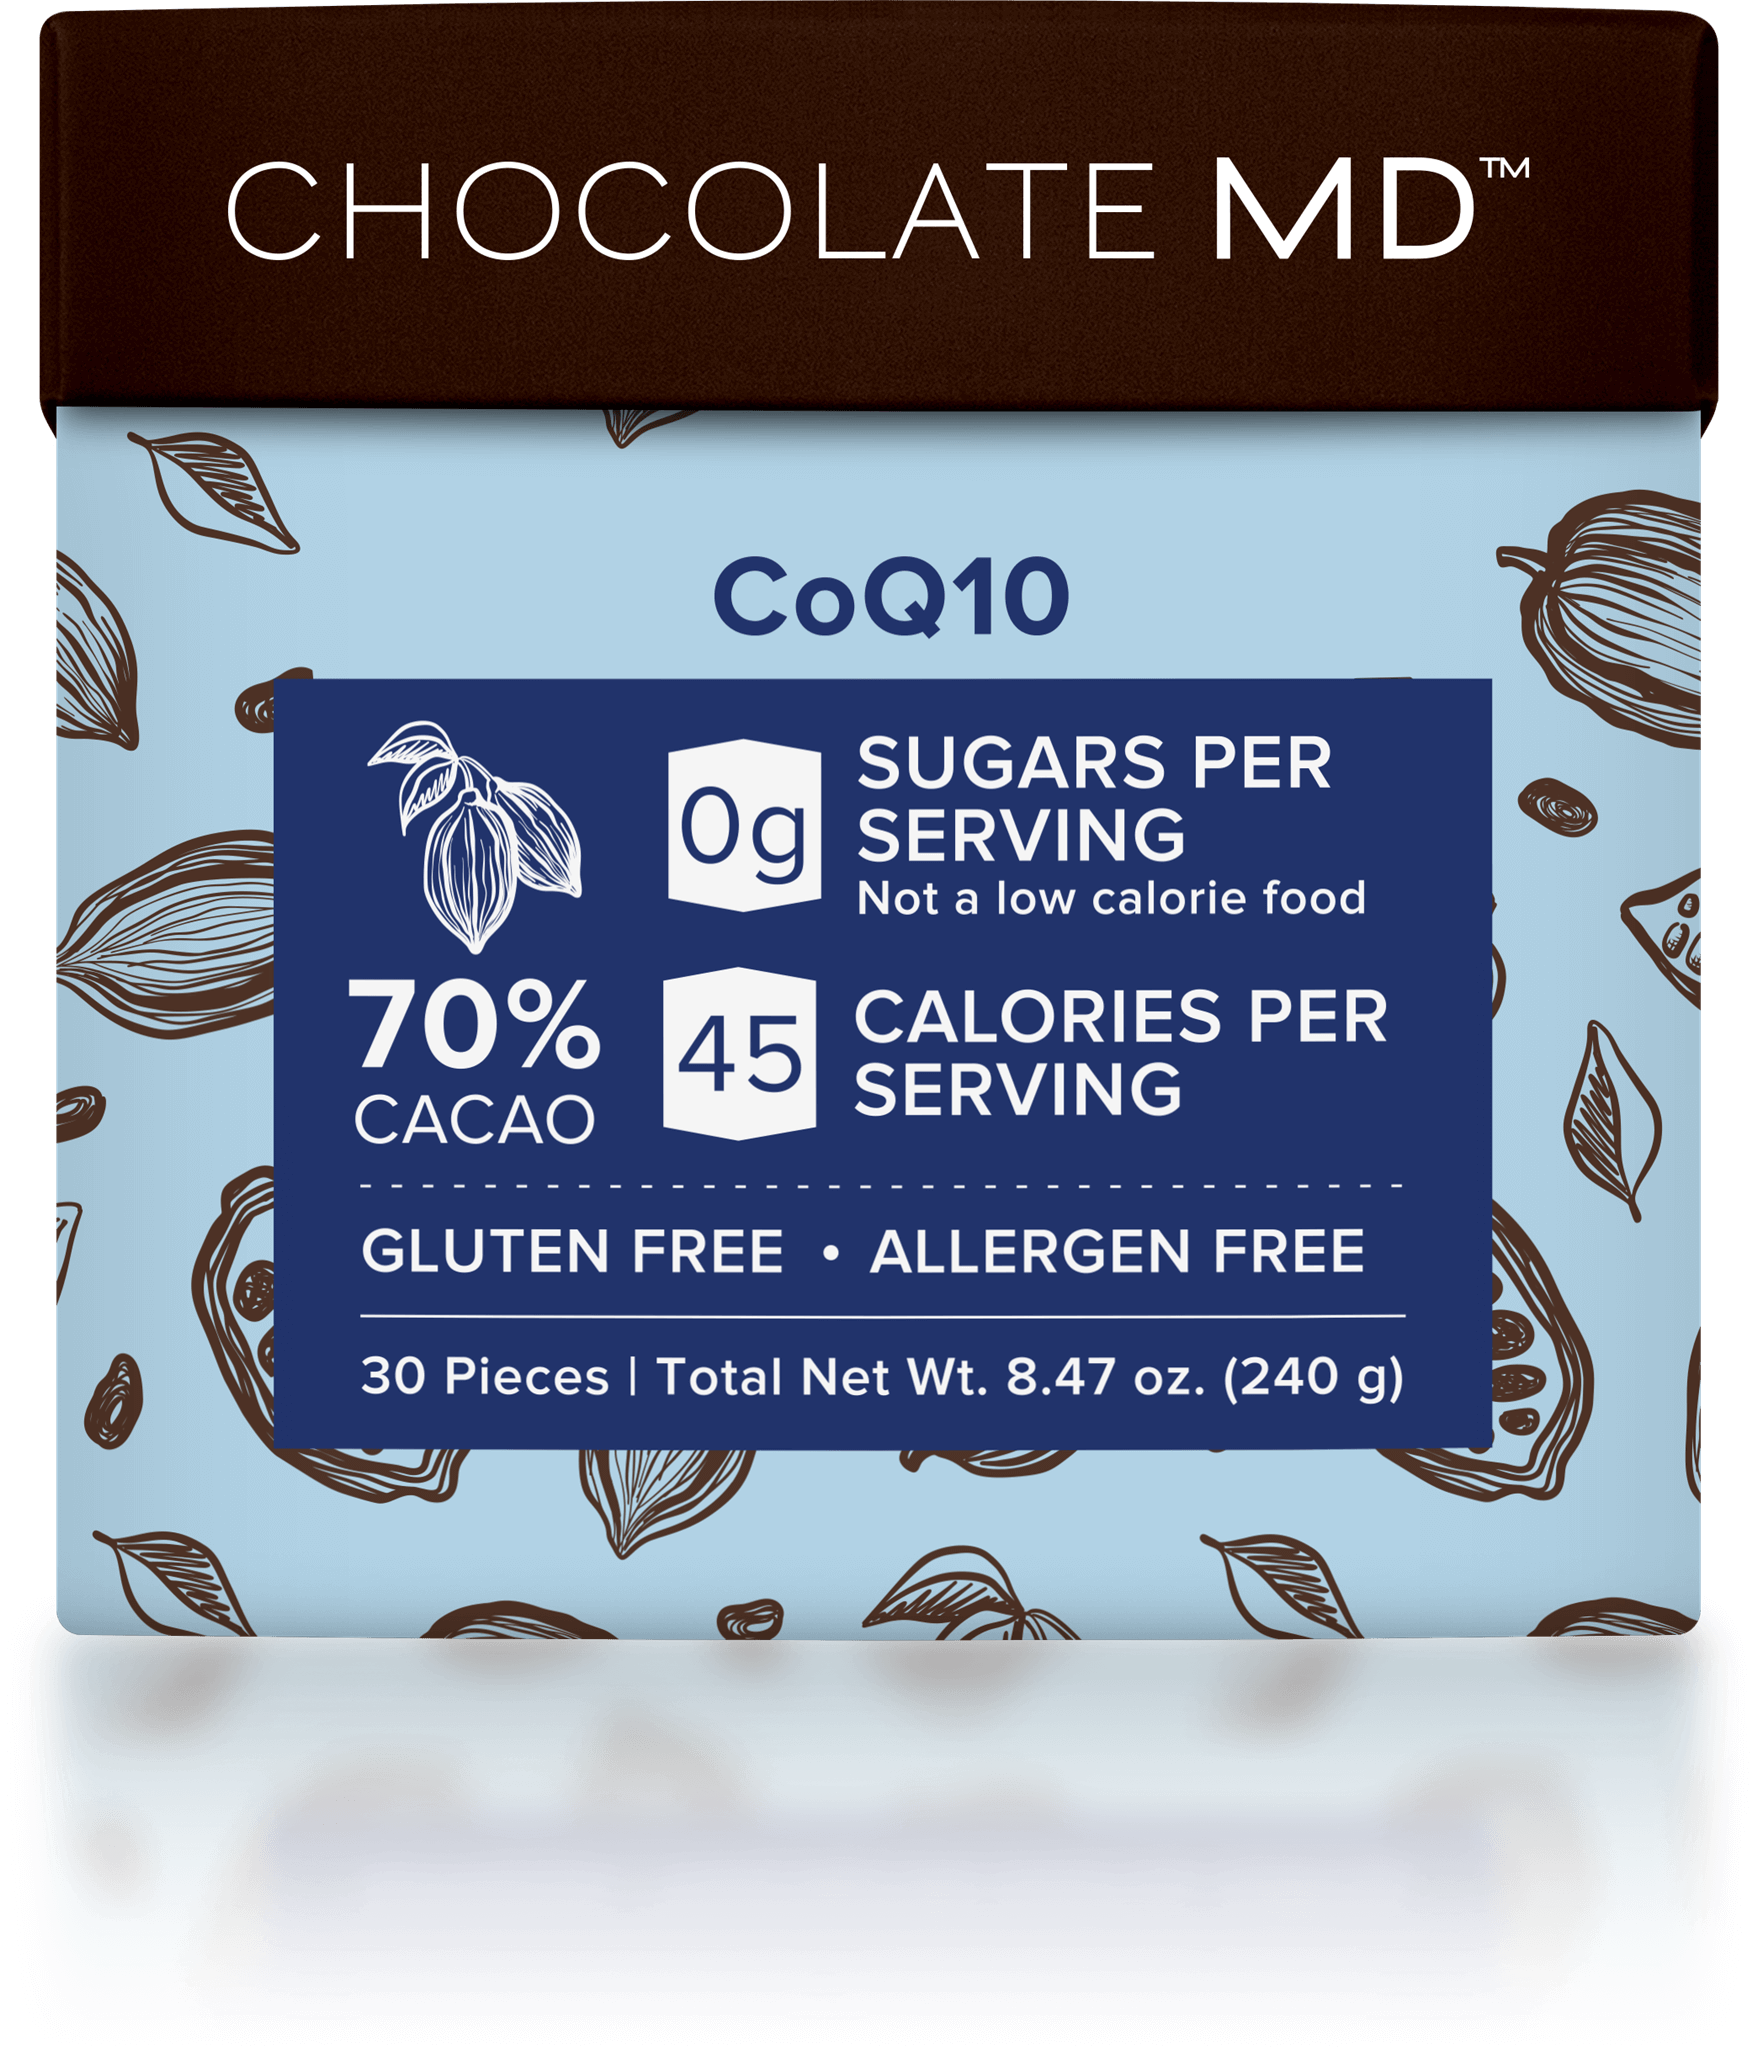 Chocolate MD – CoQ10